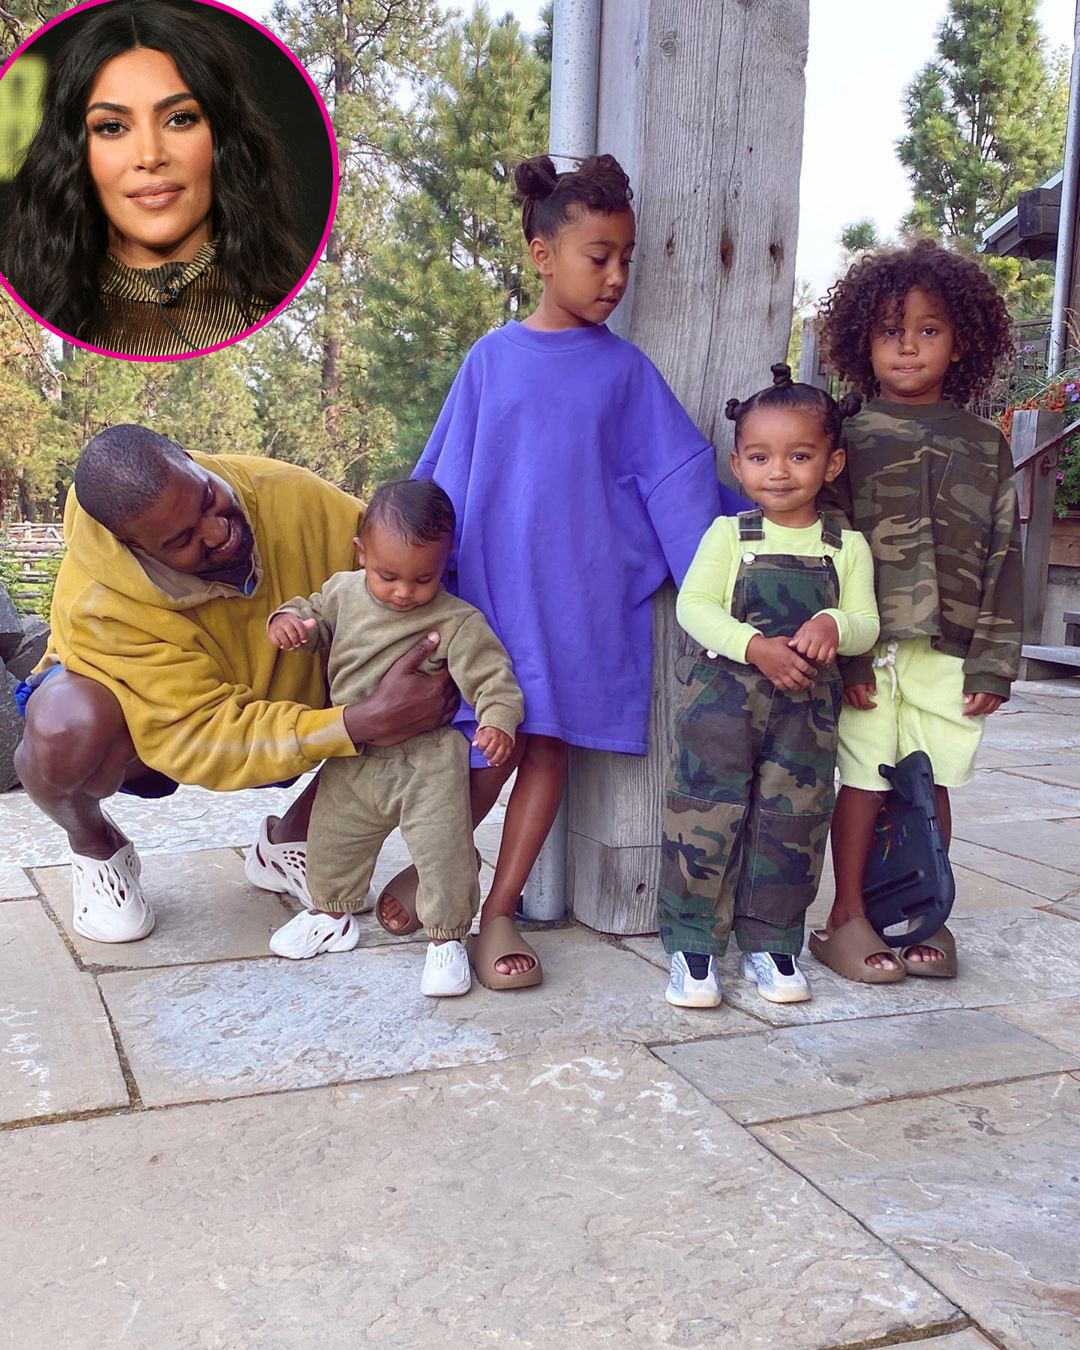 Kim Kardashian Shares Photo of 4 Kids With Kanye West: I'm 'So Lucky'